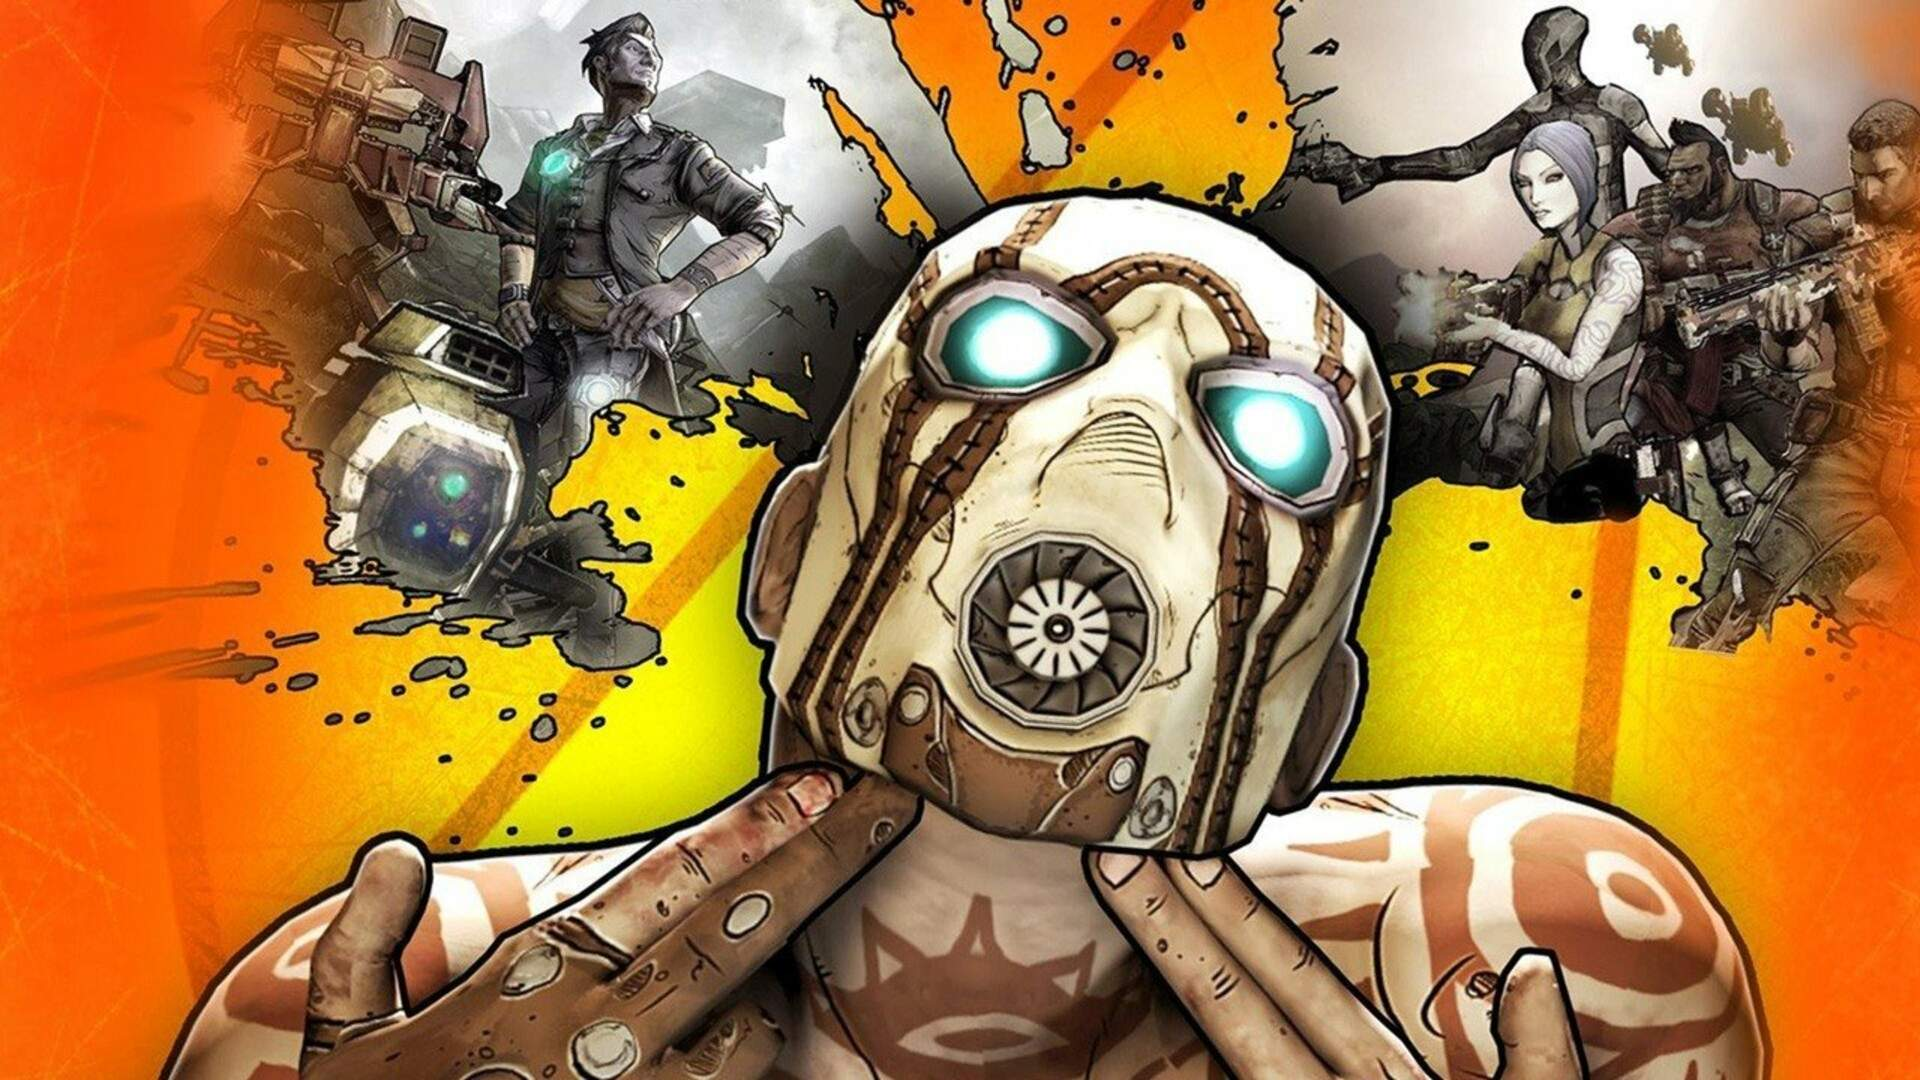 A Borderlands Movie Is Still in the Works, and Now It Has a Director